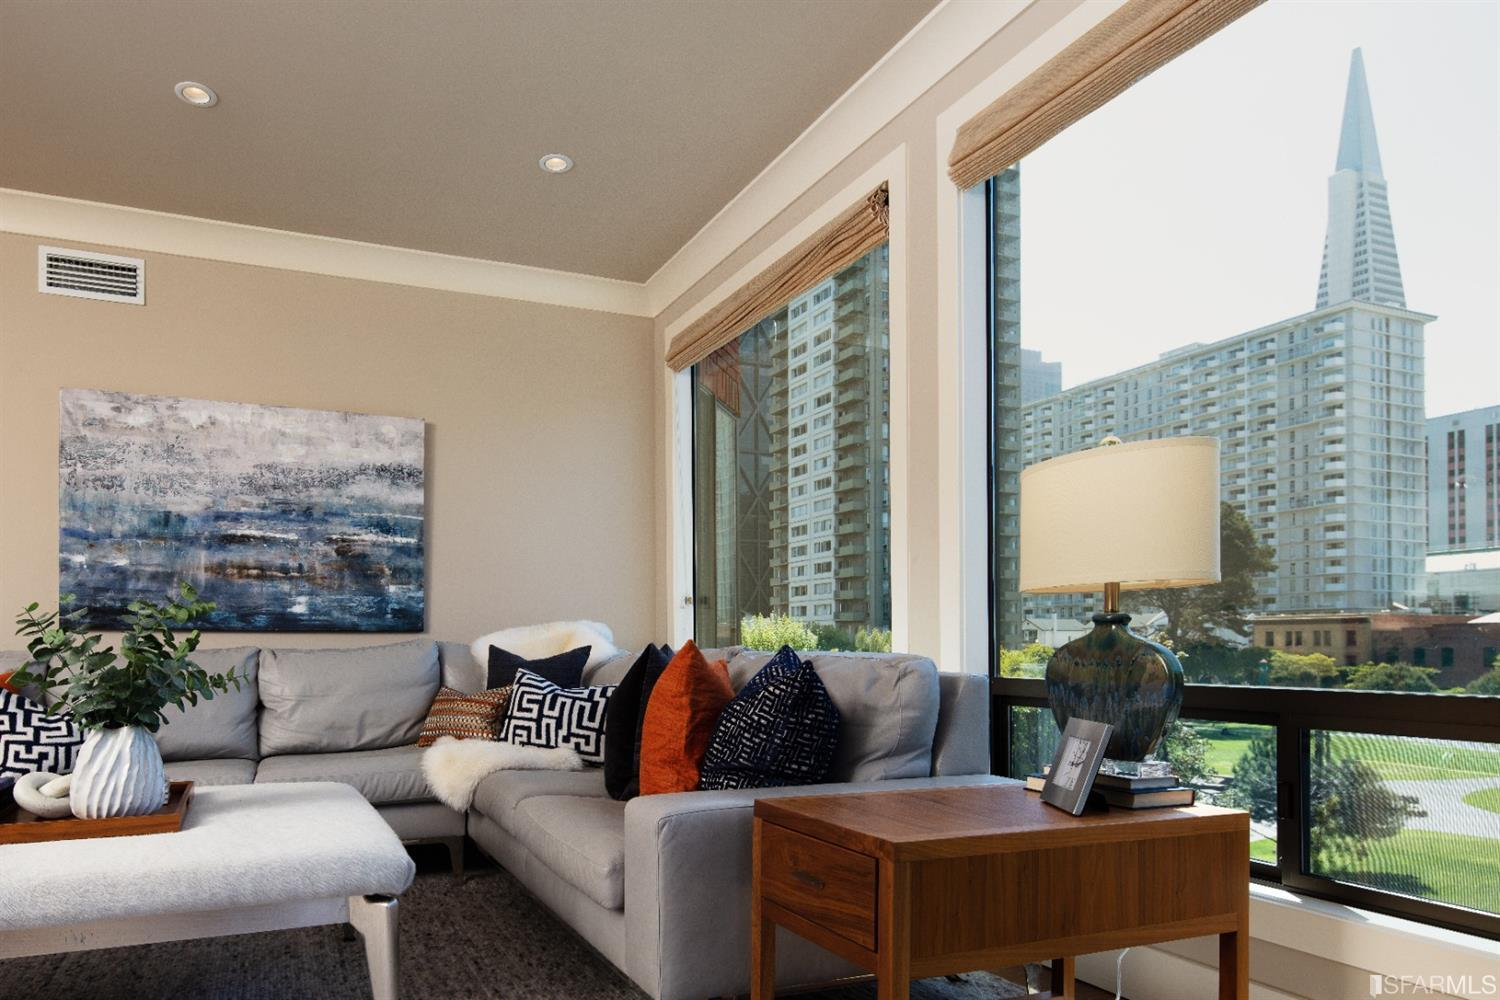 SOLD | 550 Davis #13 | Financial District | $2,950,000